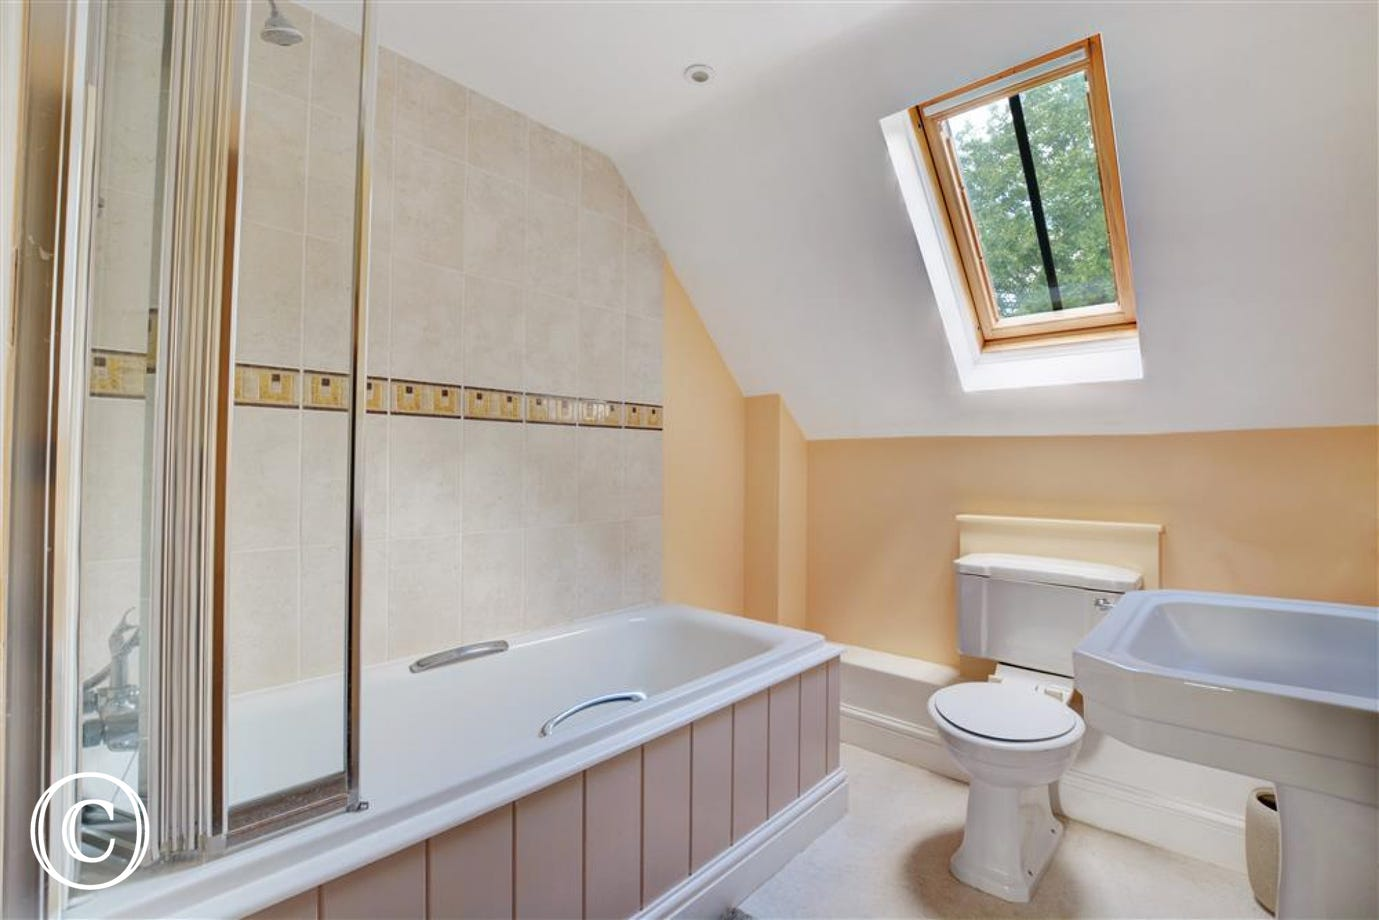 Family bathroom with bath and overbath shower